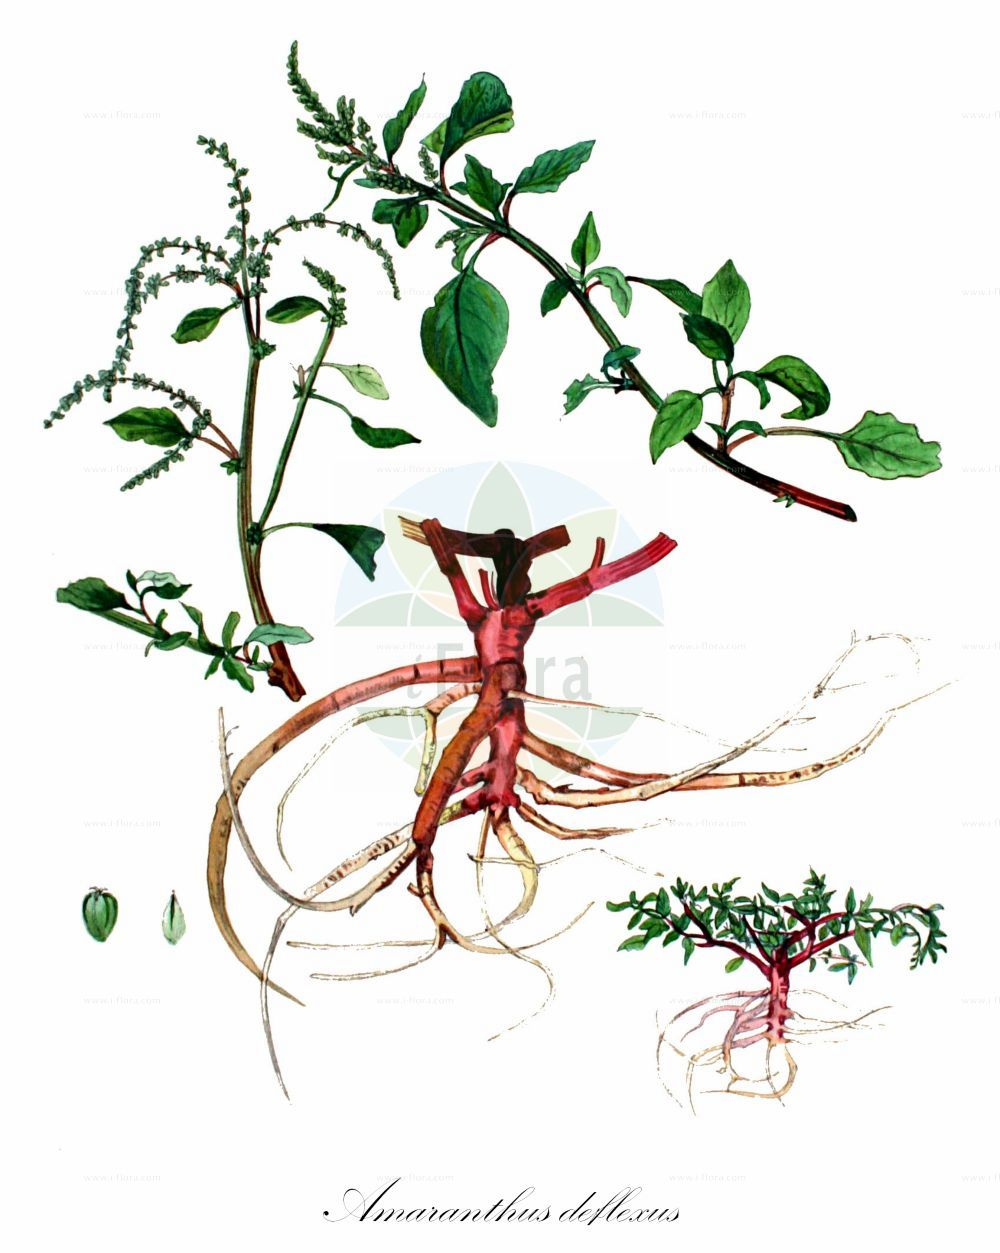 Historische Abbildung von Amaranthus deflexus (Liegender Fuchsschwanz - Perennial Pigweed). Das Bild zeigt Blatt, Bluete, Frucht und Same. ---- Historical Drawing of Amaranthus deflexus (Liegender Fuchsschwanz - Perennial Pigweed).The image is showing leaf, flower, fruit and seed.(Amaranthus deflexus,Liegender Fuchsschwanz,Perennial Pigweed,Albersia deflexa,Amaranthus prostratus,Euxolus deflexus,Glomeraria deflexa,Herabgebogener Fuchsschwanz,Niederliegender Fuchsschwanz,Argentina Amaranth,Large-fruit Amaranth,Low Amaranth,Prostrate Amaranth,Spreading Amaranth,Amaranthus,Fuchsschwanz,Pigweed,Amaranthaceae,Fuchsschwanzgewaechse,Pigweed family,Blatt,Bluete,Frucht,Same,leaf,flower,fruit,seed,Kops (1800-1934))